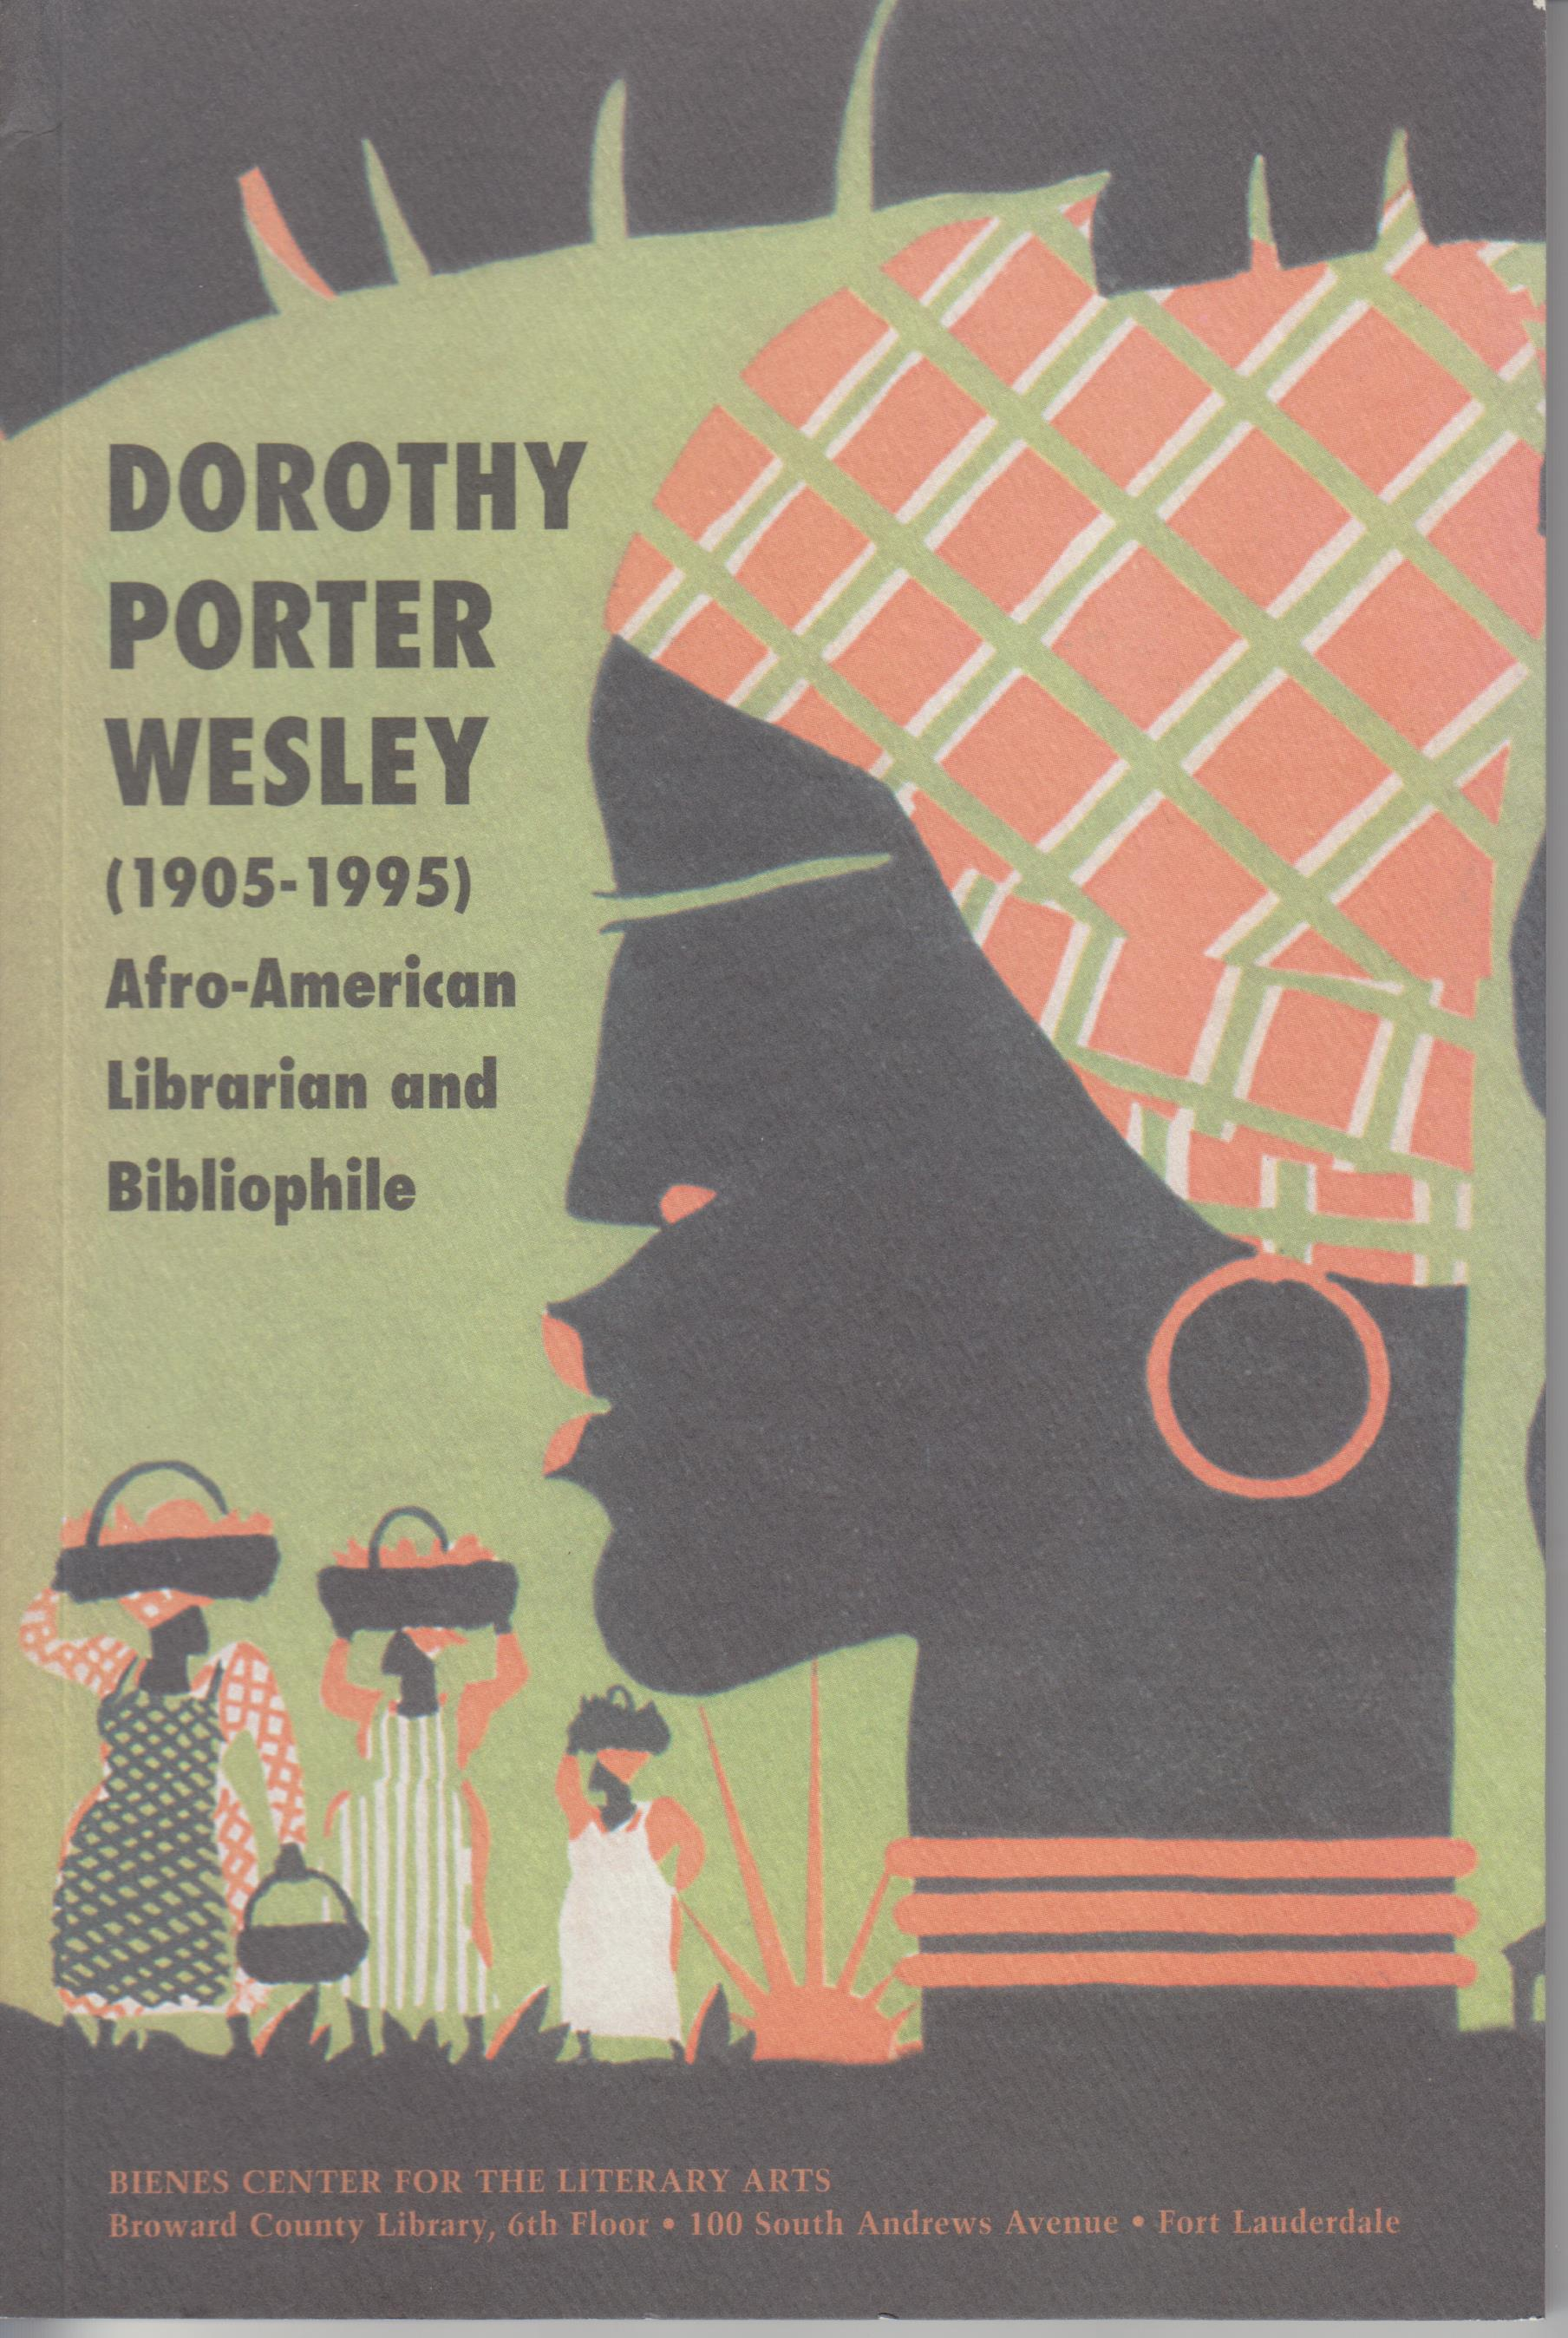 Image for Dorothy Porter Wesley (1905-1995) : Afro-American Librarian and Bibliophile: an Exhibition, February 1-March 16, 2001